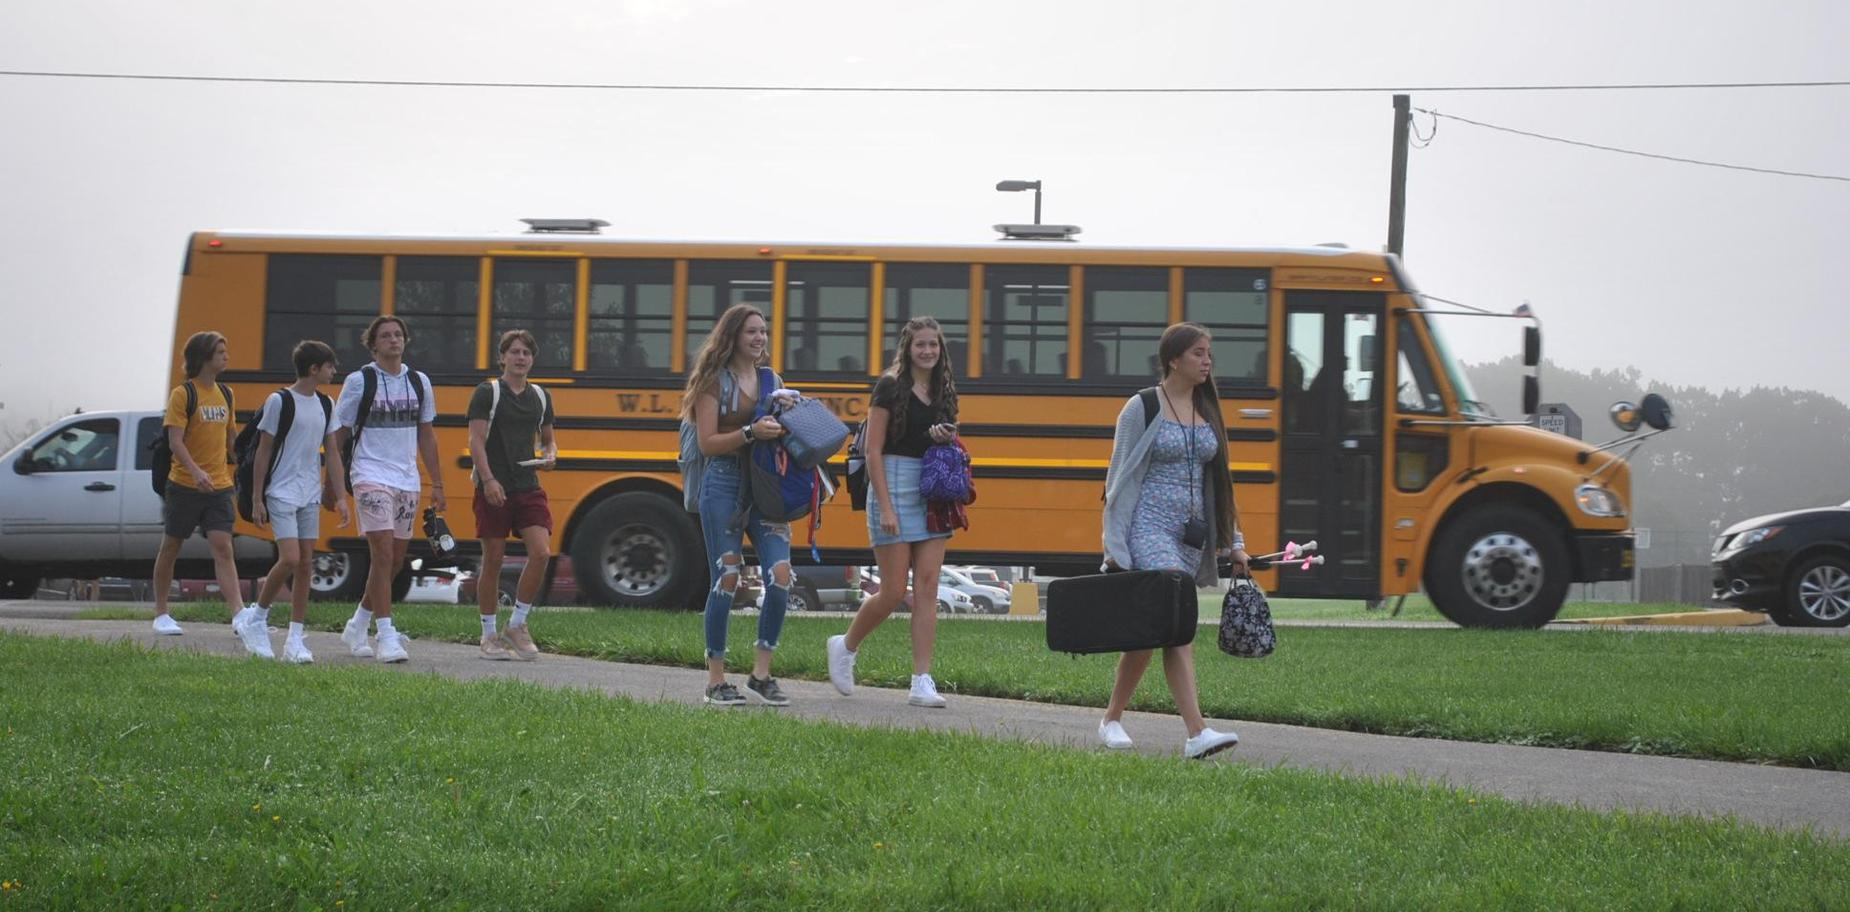 Students arriving for school on the first day